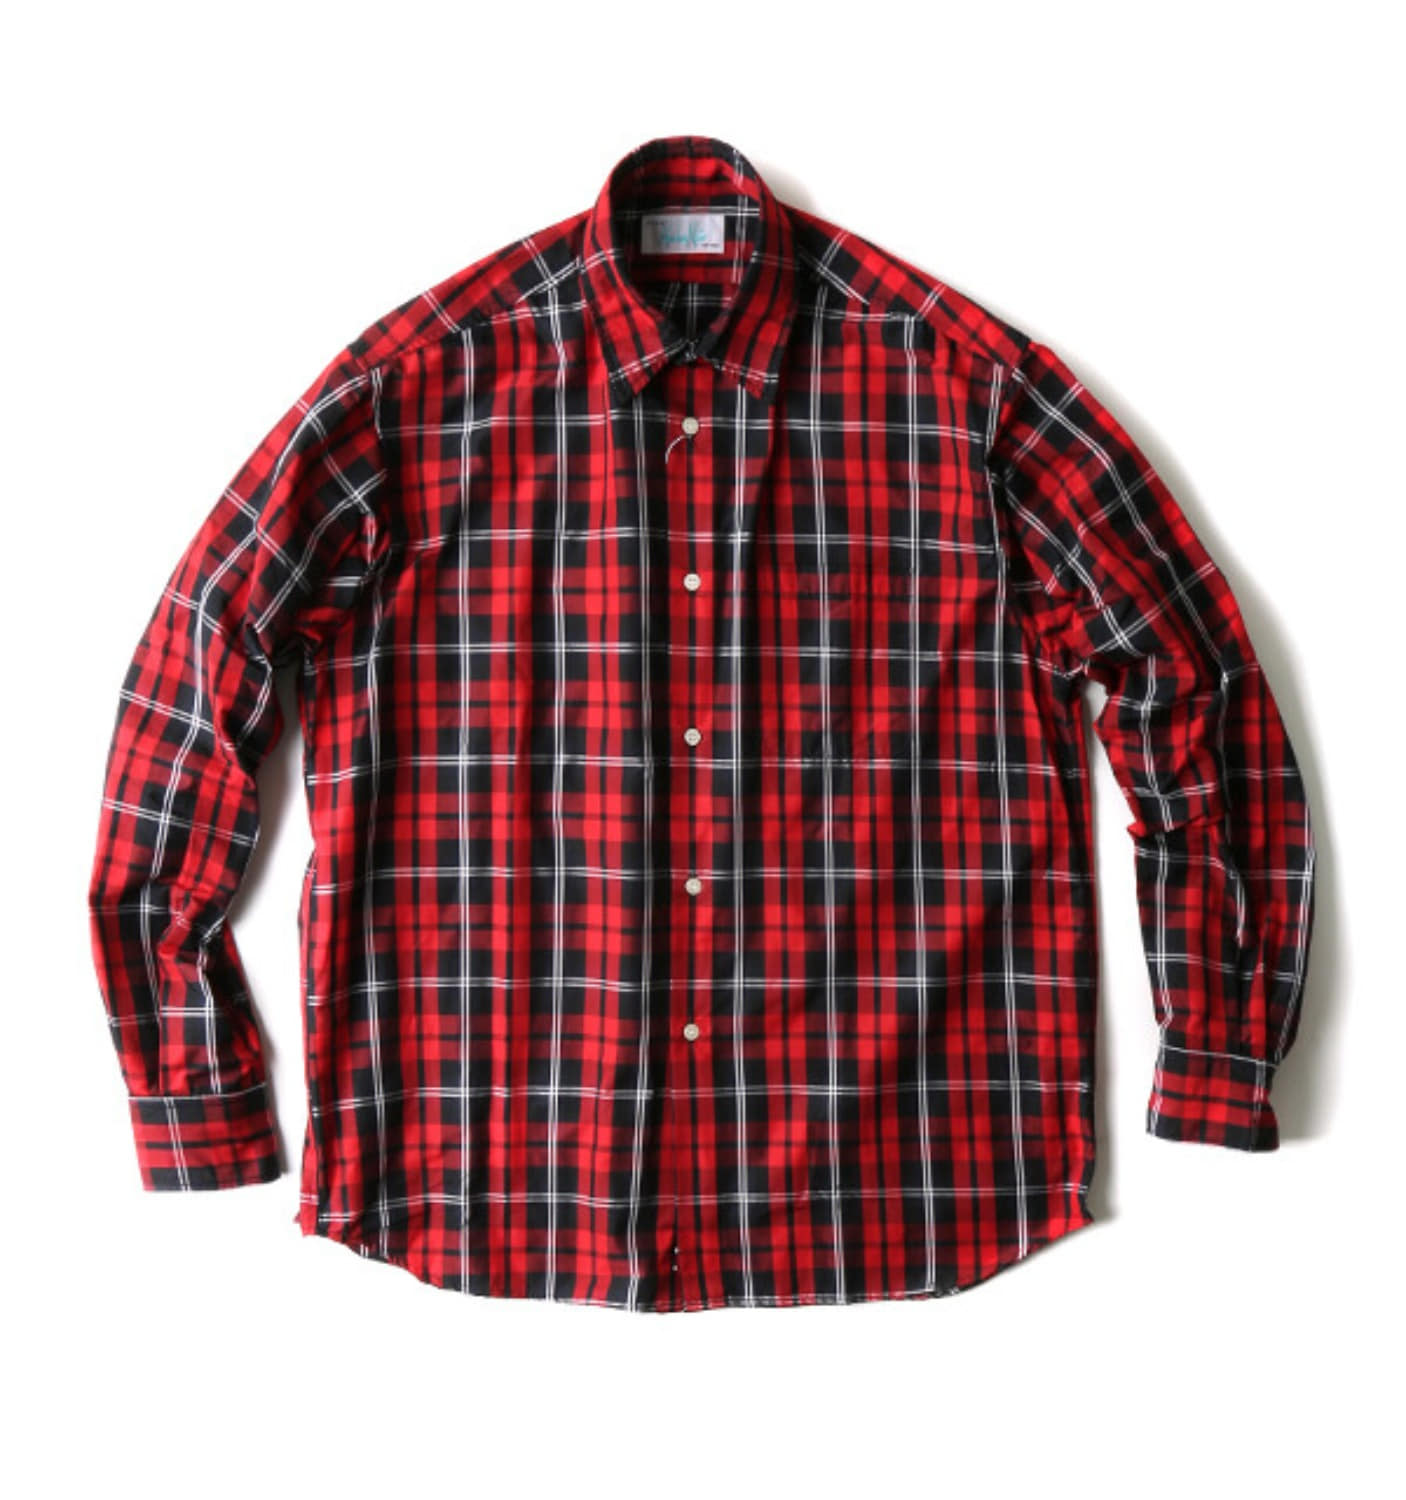 HN CHECK SHIRT RED